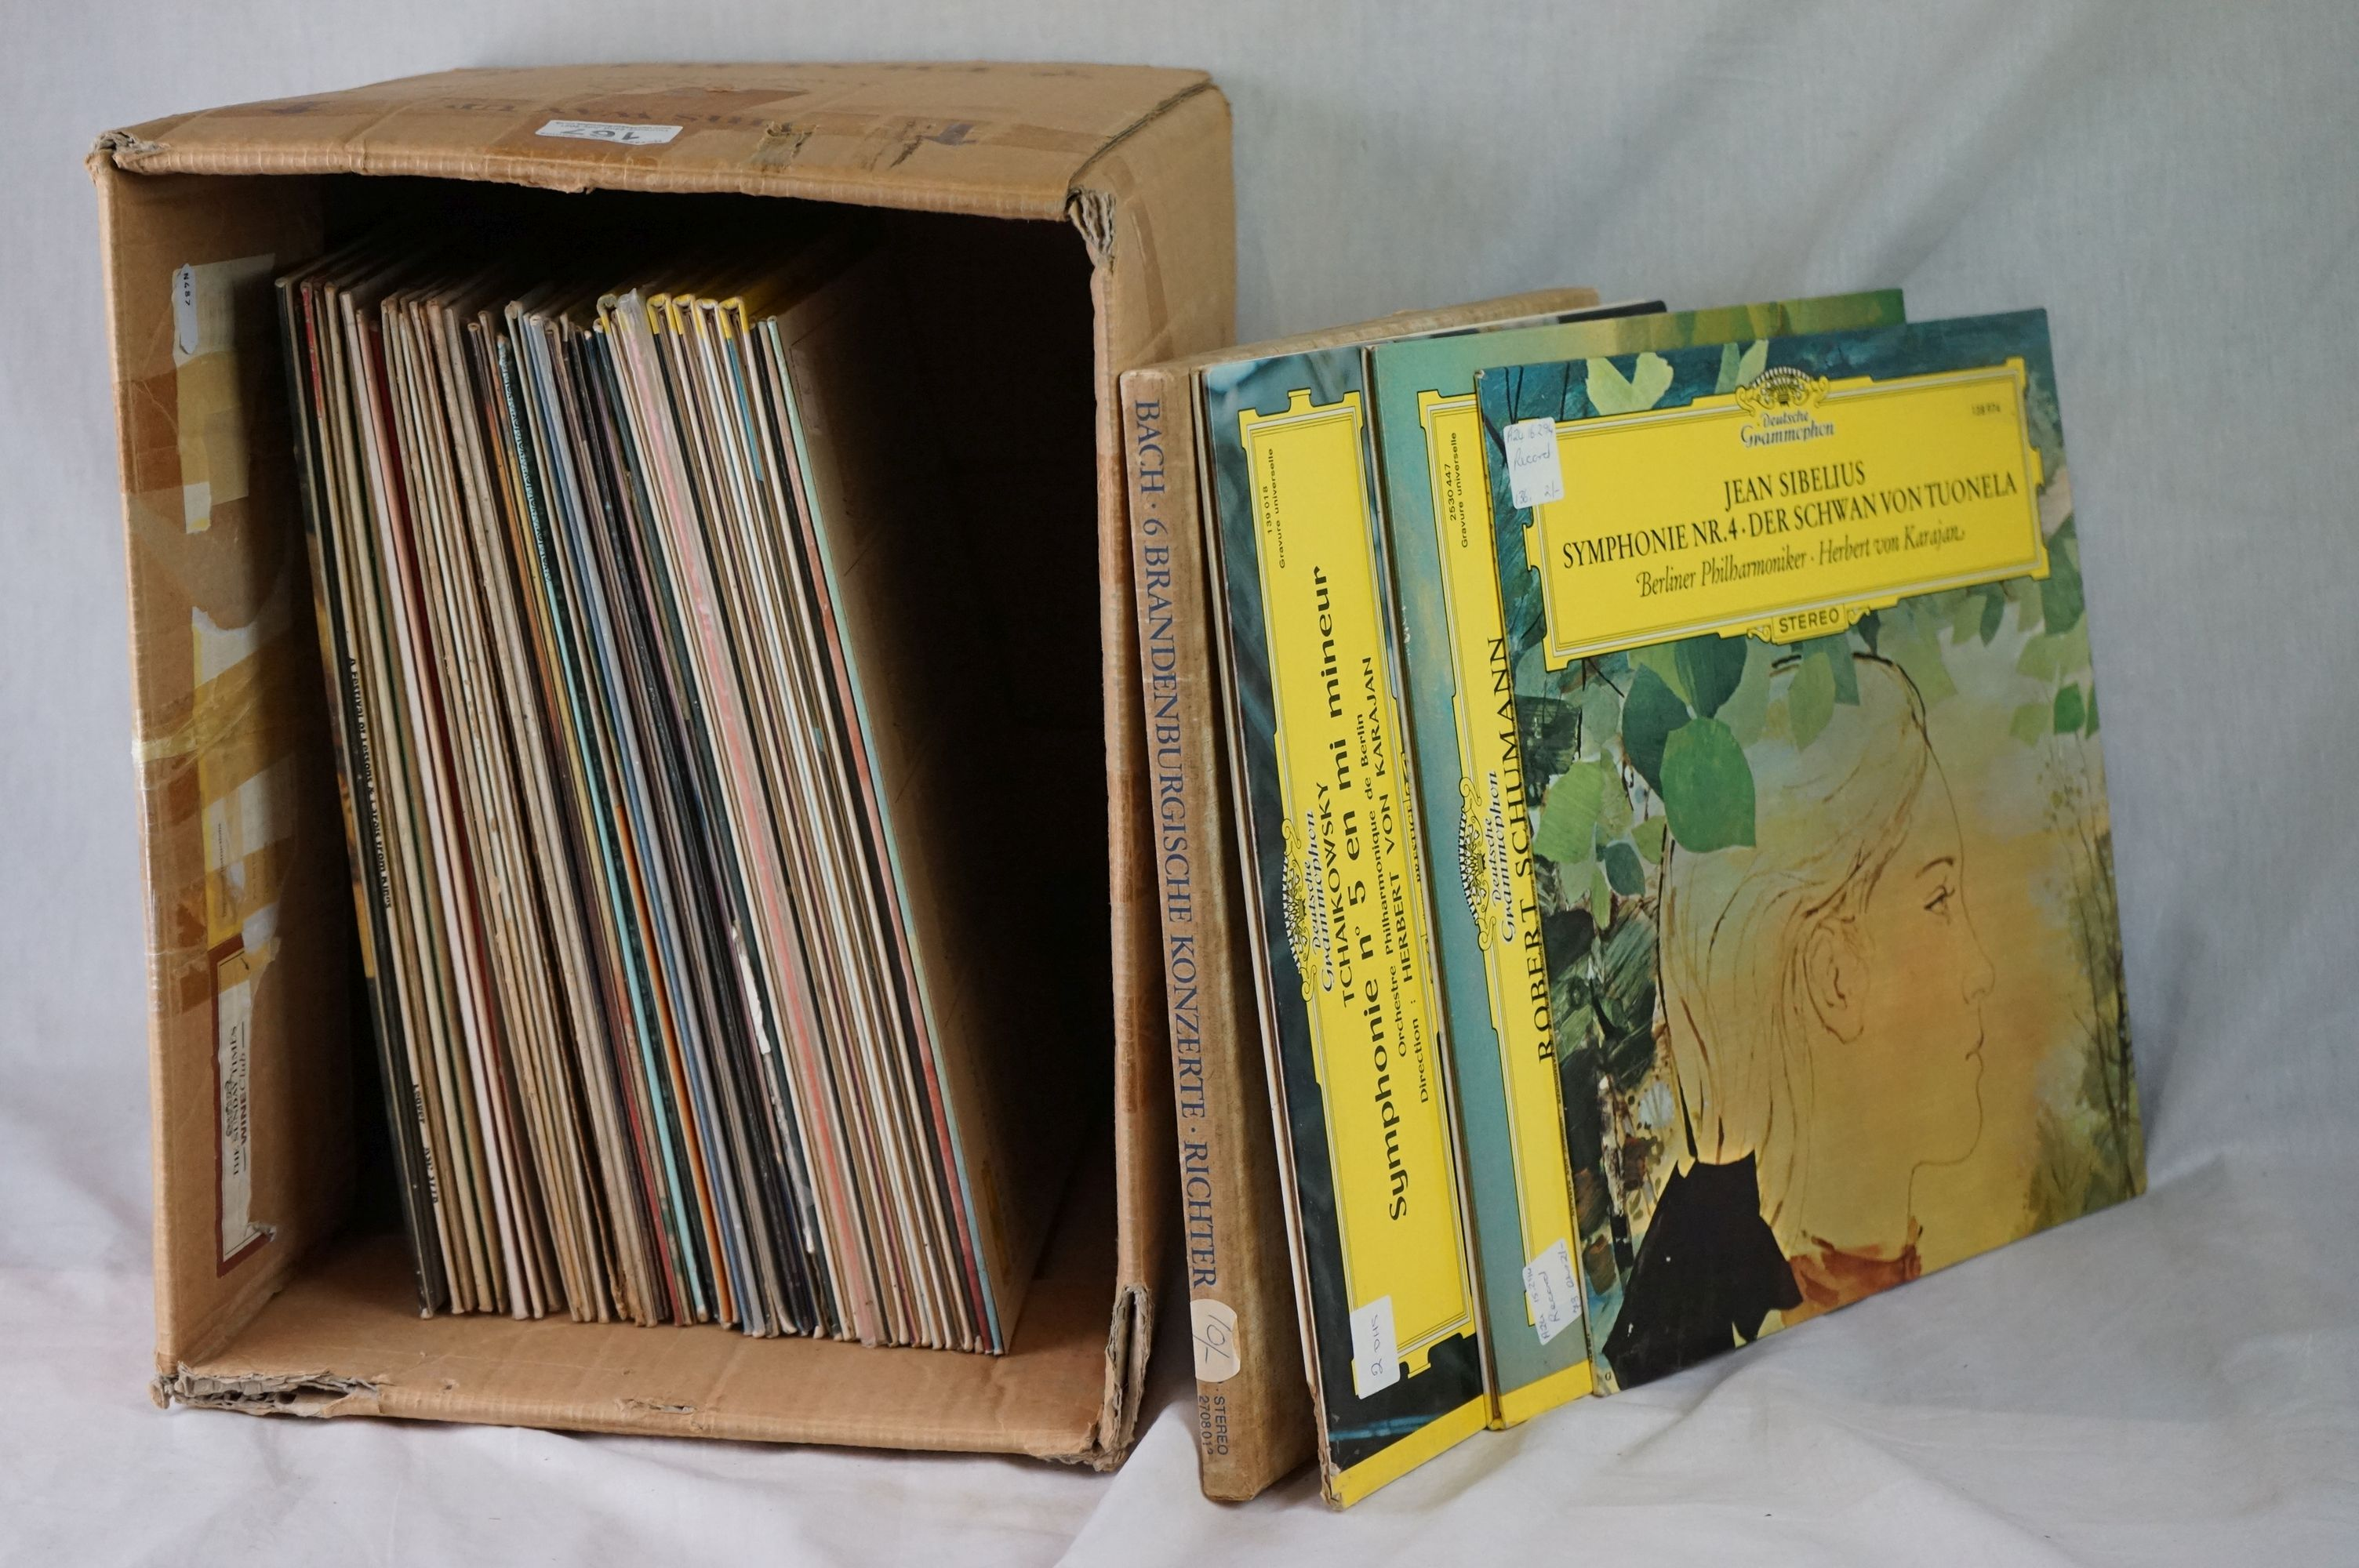 Vinyl - Classical approx 40 LP's to include several Deutsche Grammophon releases. Condition of